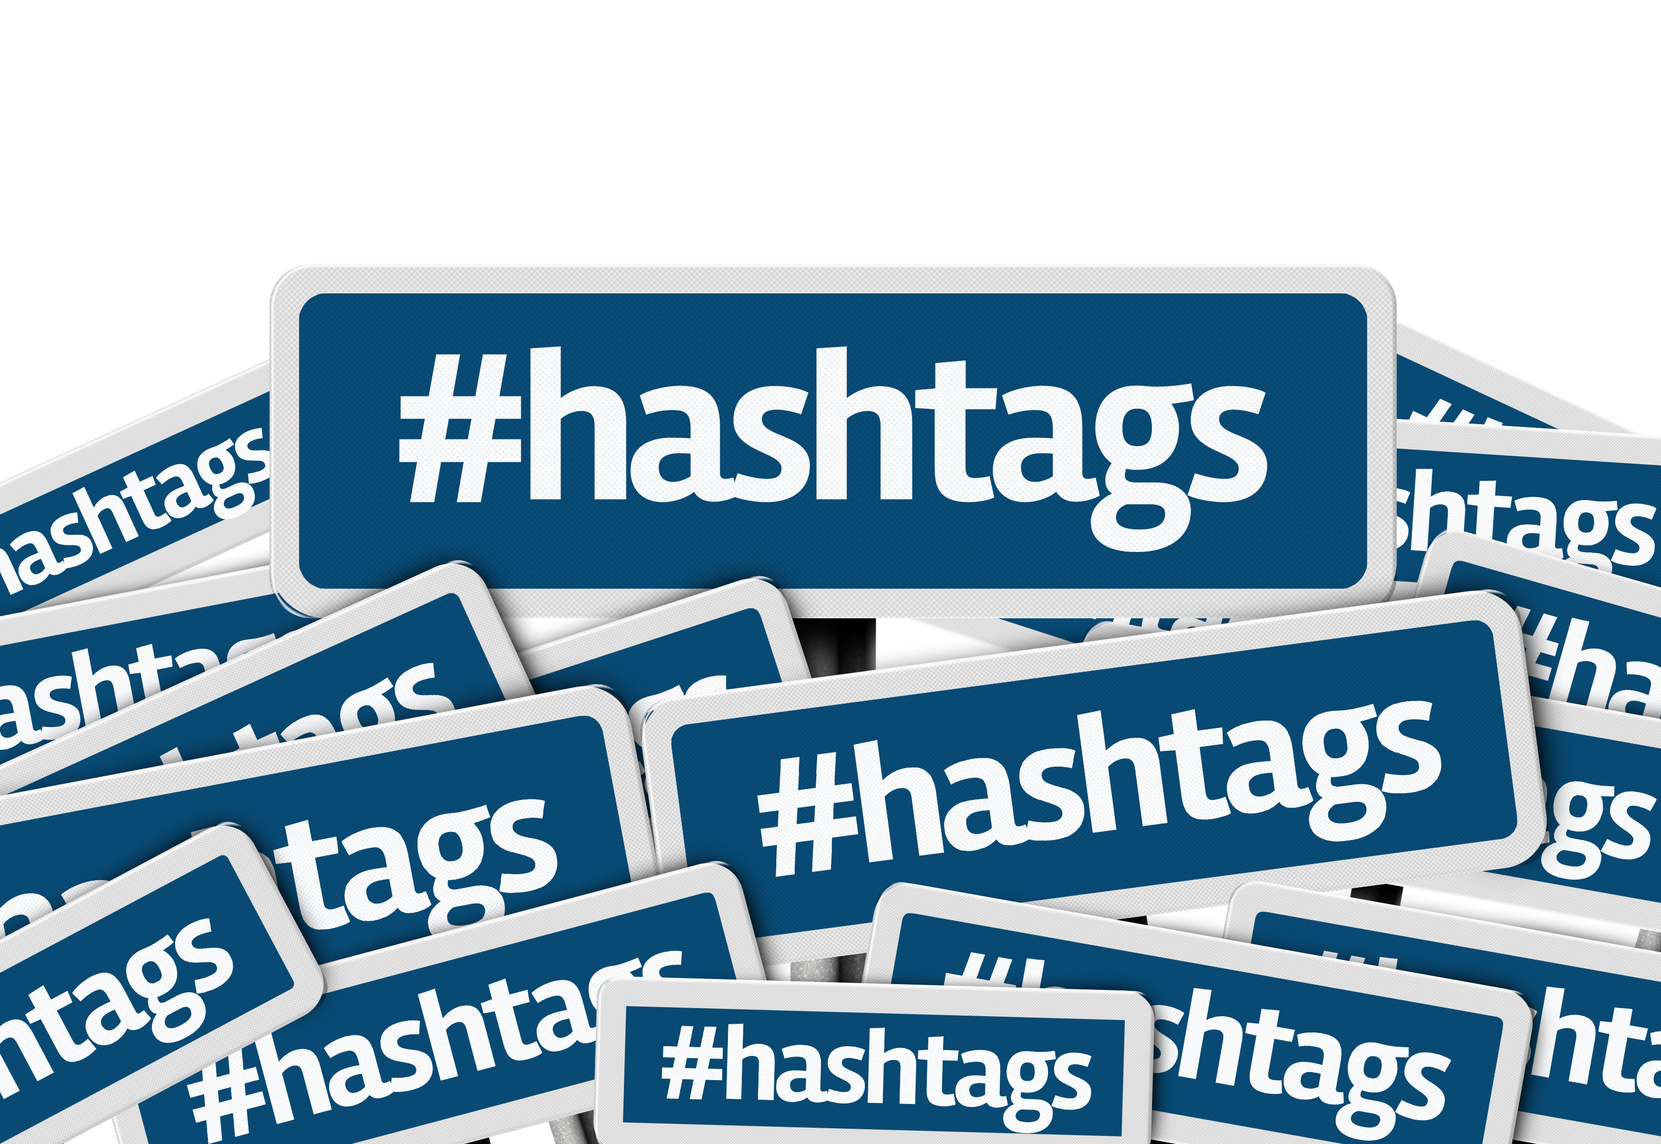 Facebook Hashtags #introduced